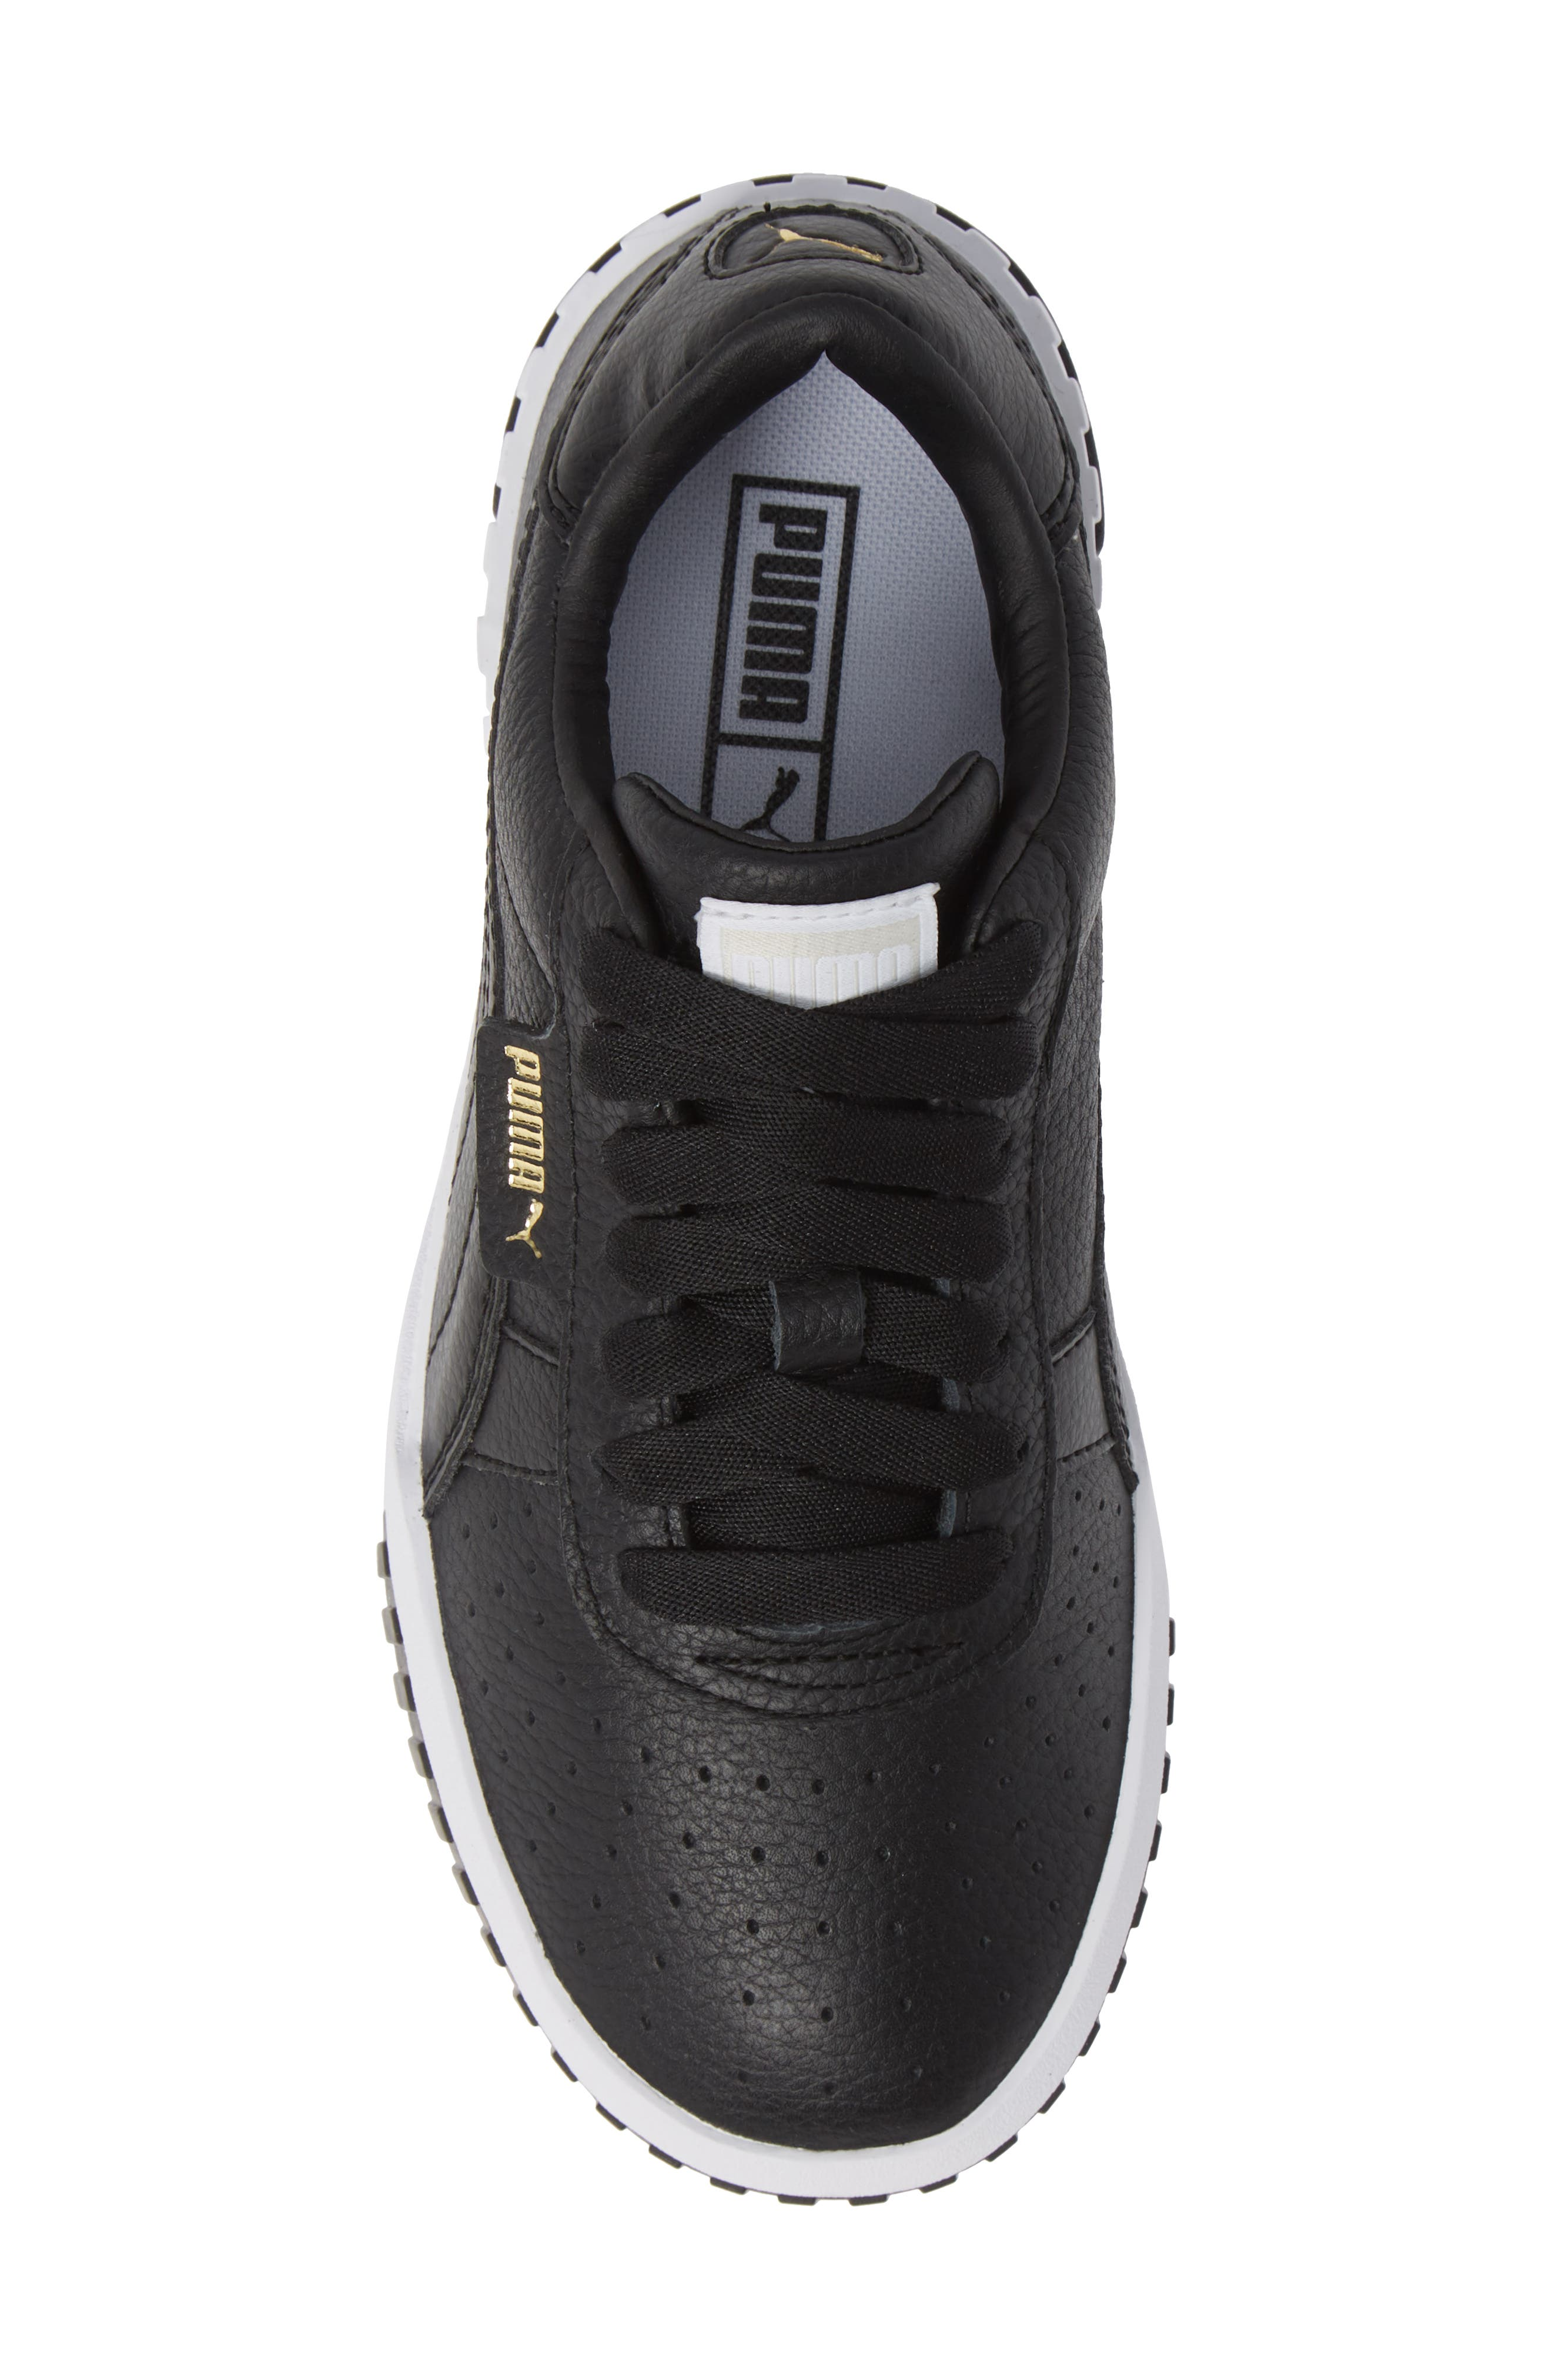 PUMA, Cali Sneaker, Alternate thumbnail 5, color, PUMA BLACK/ PUMA WHITE